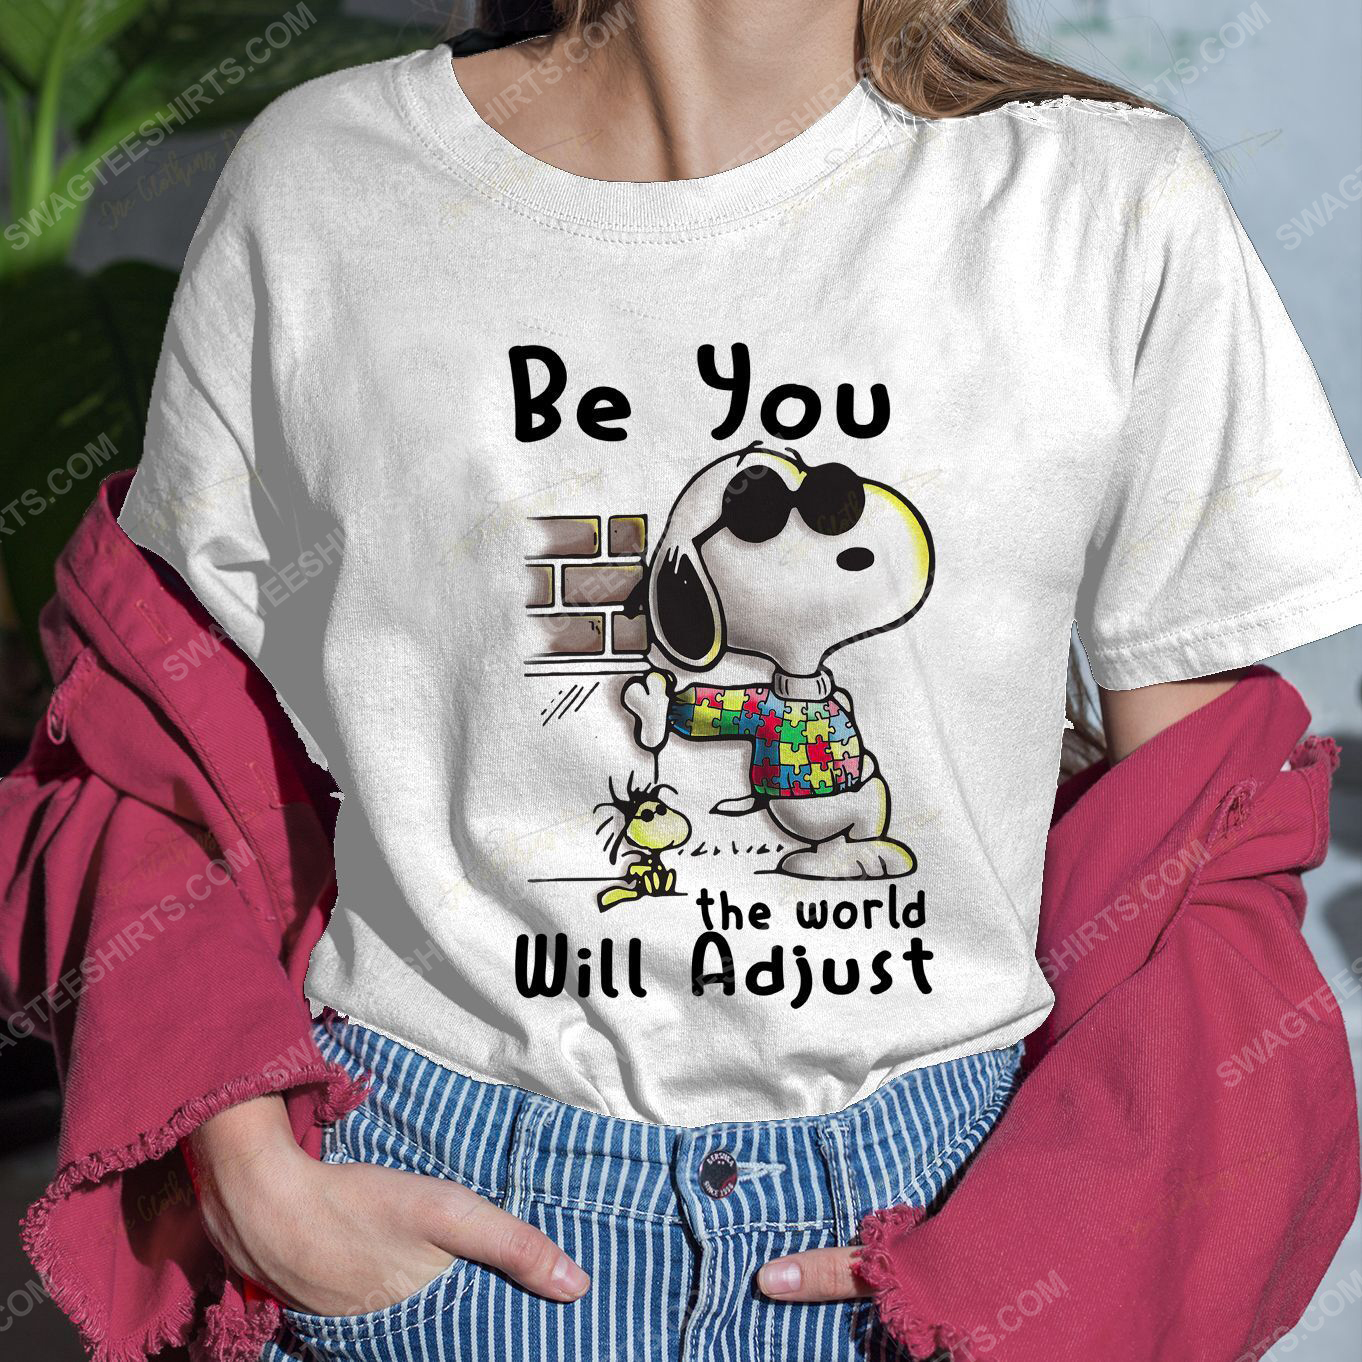 Snoopy charlie brown be you the world will adjust shirt 4(1)